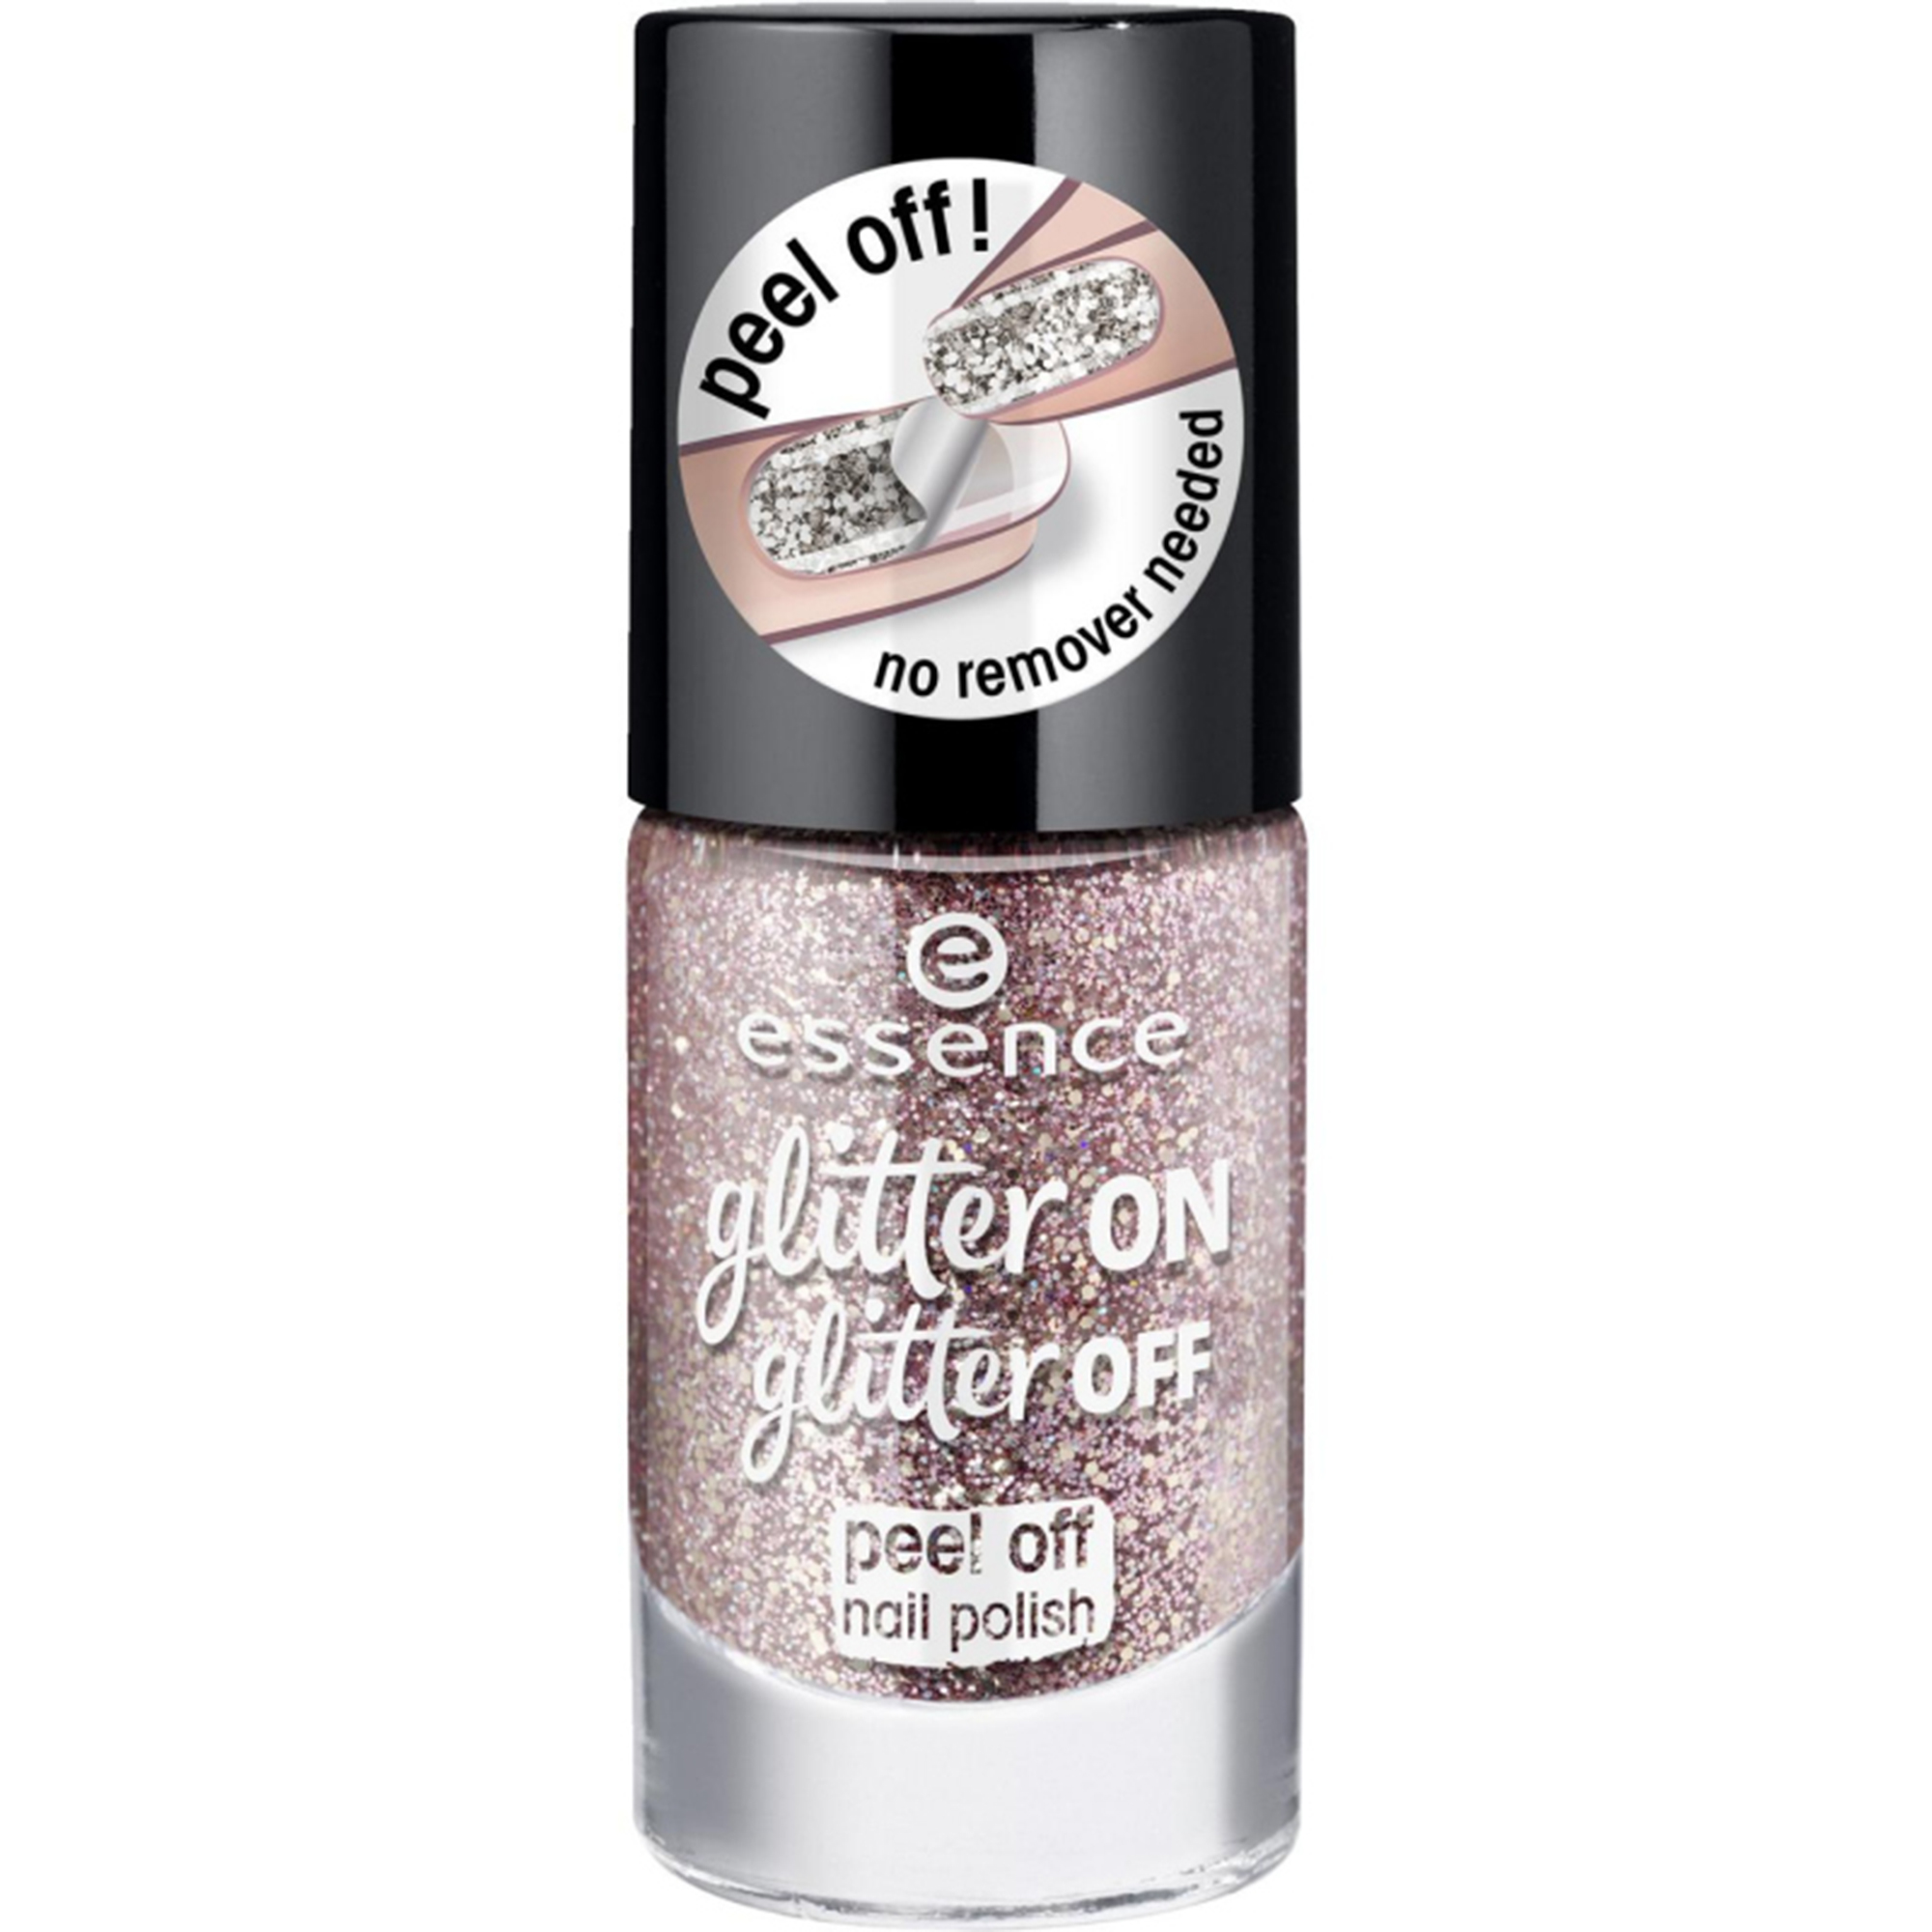 10 Long-Wearing Beauty Products to Up Your Date Night Confidence - Sparkly manicures are the best — until it's time to take them off. This long-wear vegan glitter polish dries quickly and peels off (no nail polish remover required!) when you're ready to switch things up.